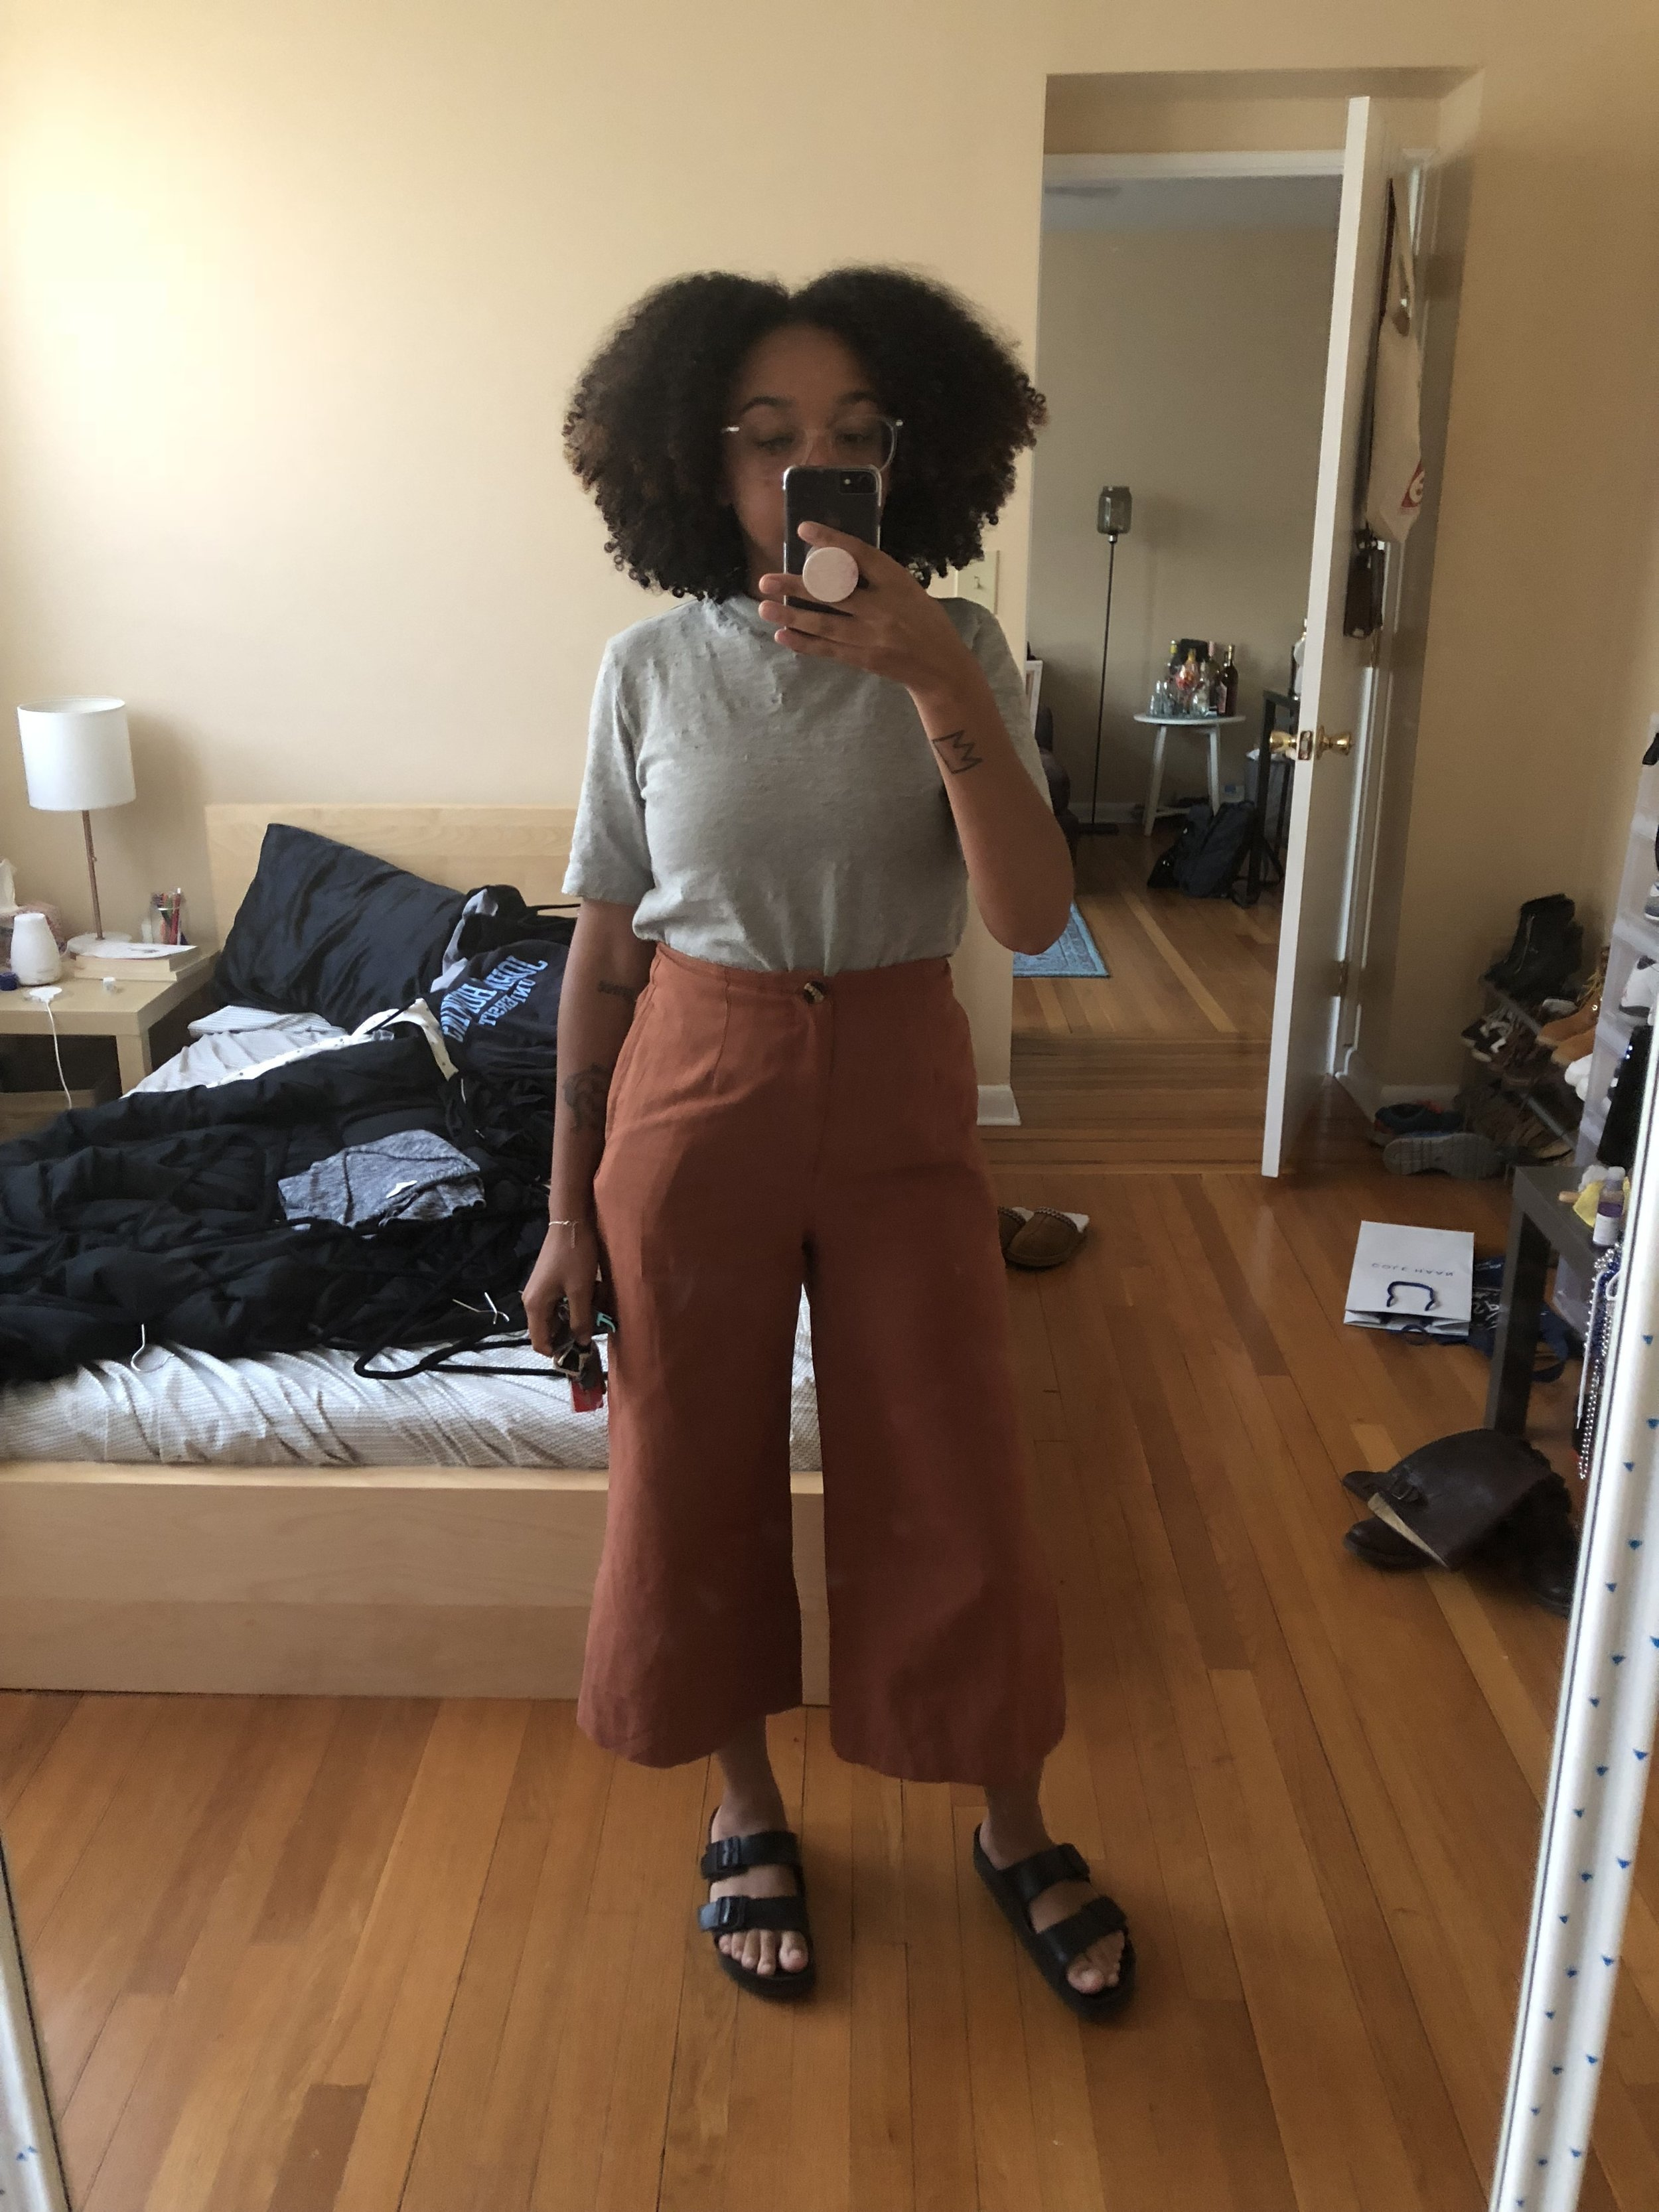 Image description: Allison is standing in a mirror. They are holding a black iPhone. They are wearing a gray top, orange pants, and black shoes. There is a bed, nightstand and door behind them.